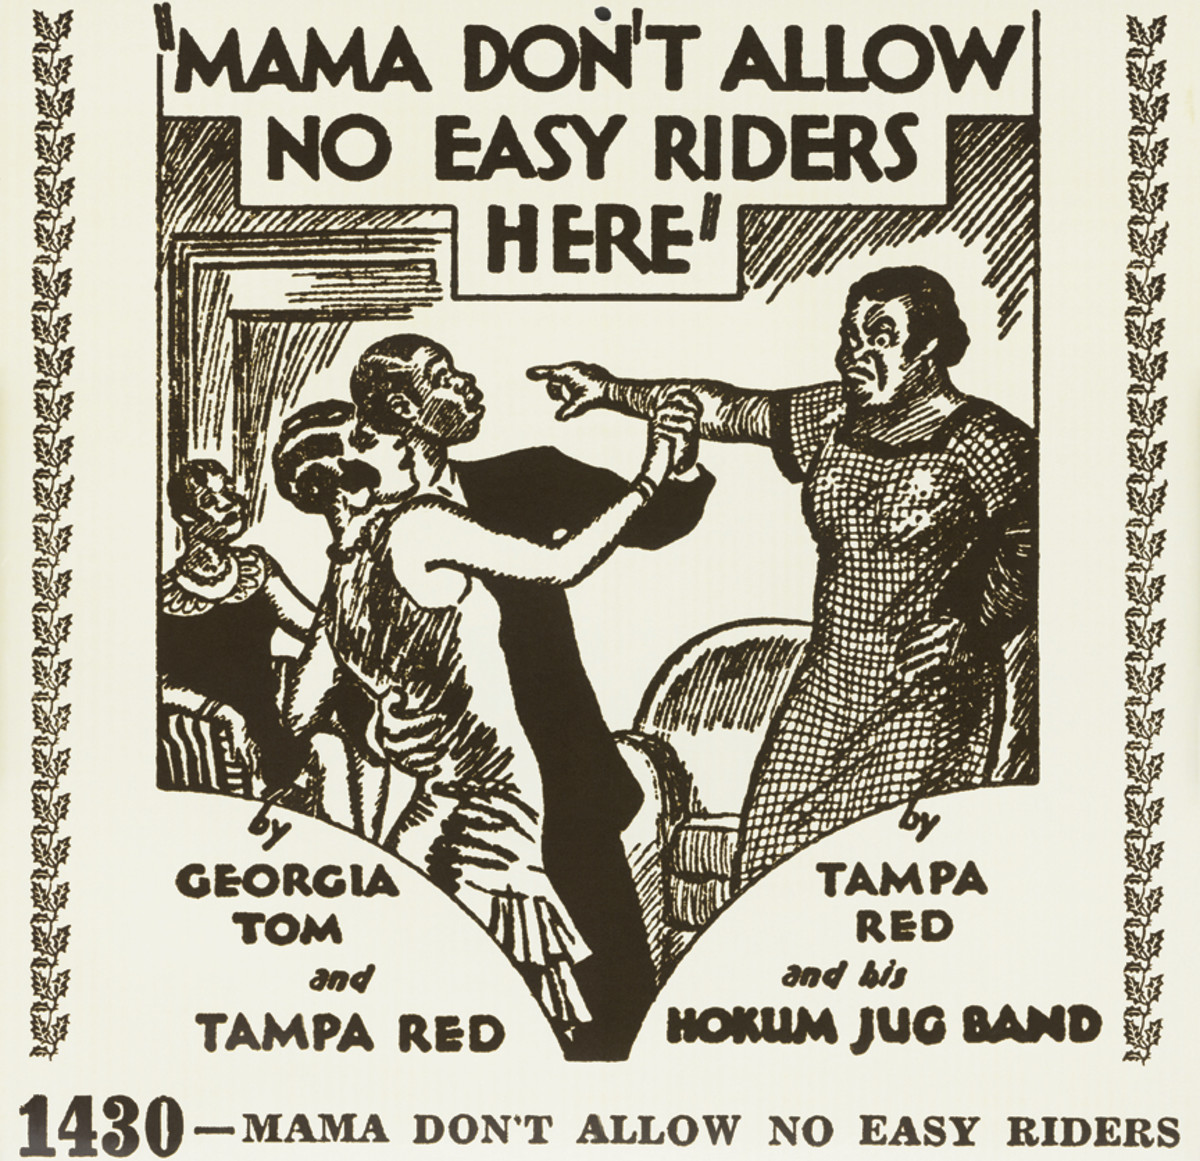 Georgia Tom and Tampa Red Mama Don't Allow No Easy Riders Here